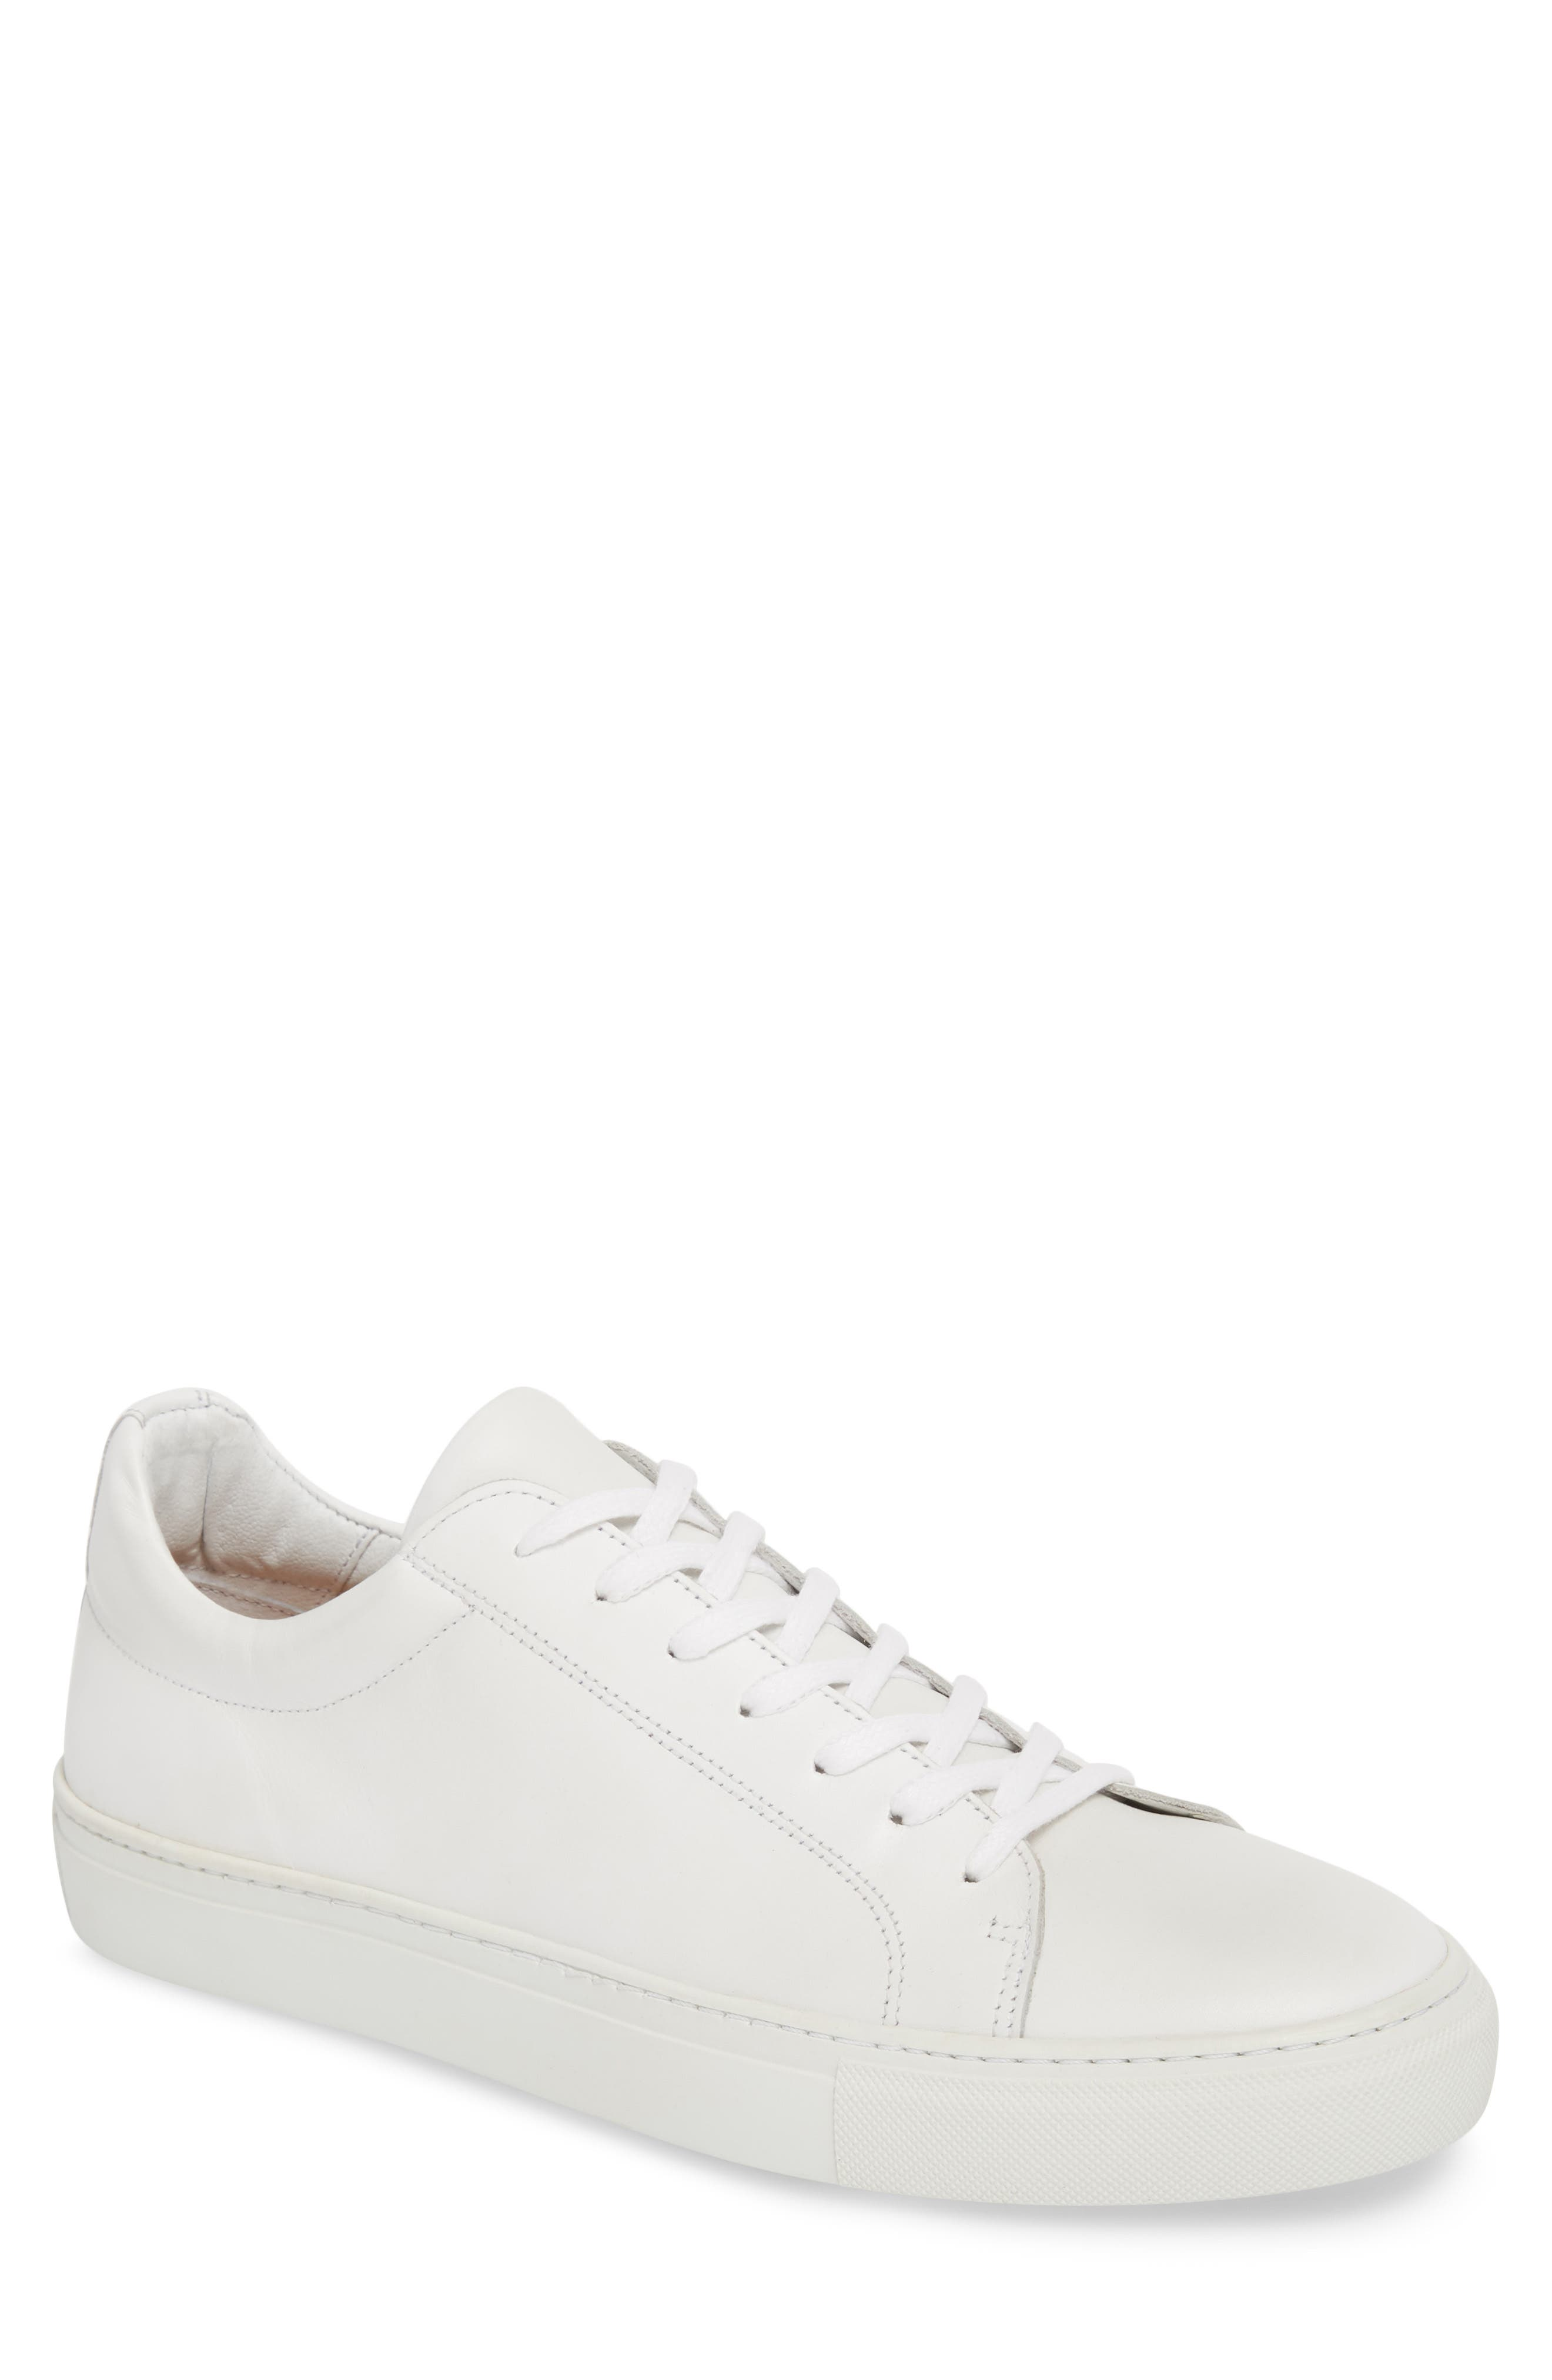 SUPPLY LAB Men'S Damian Leather Sneakers in White